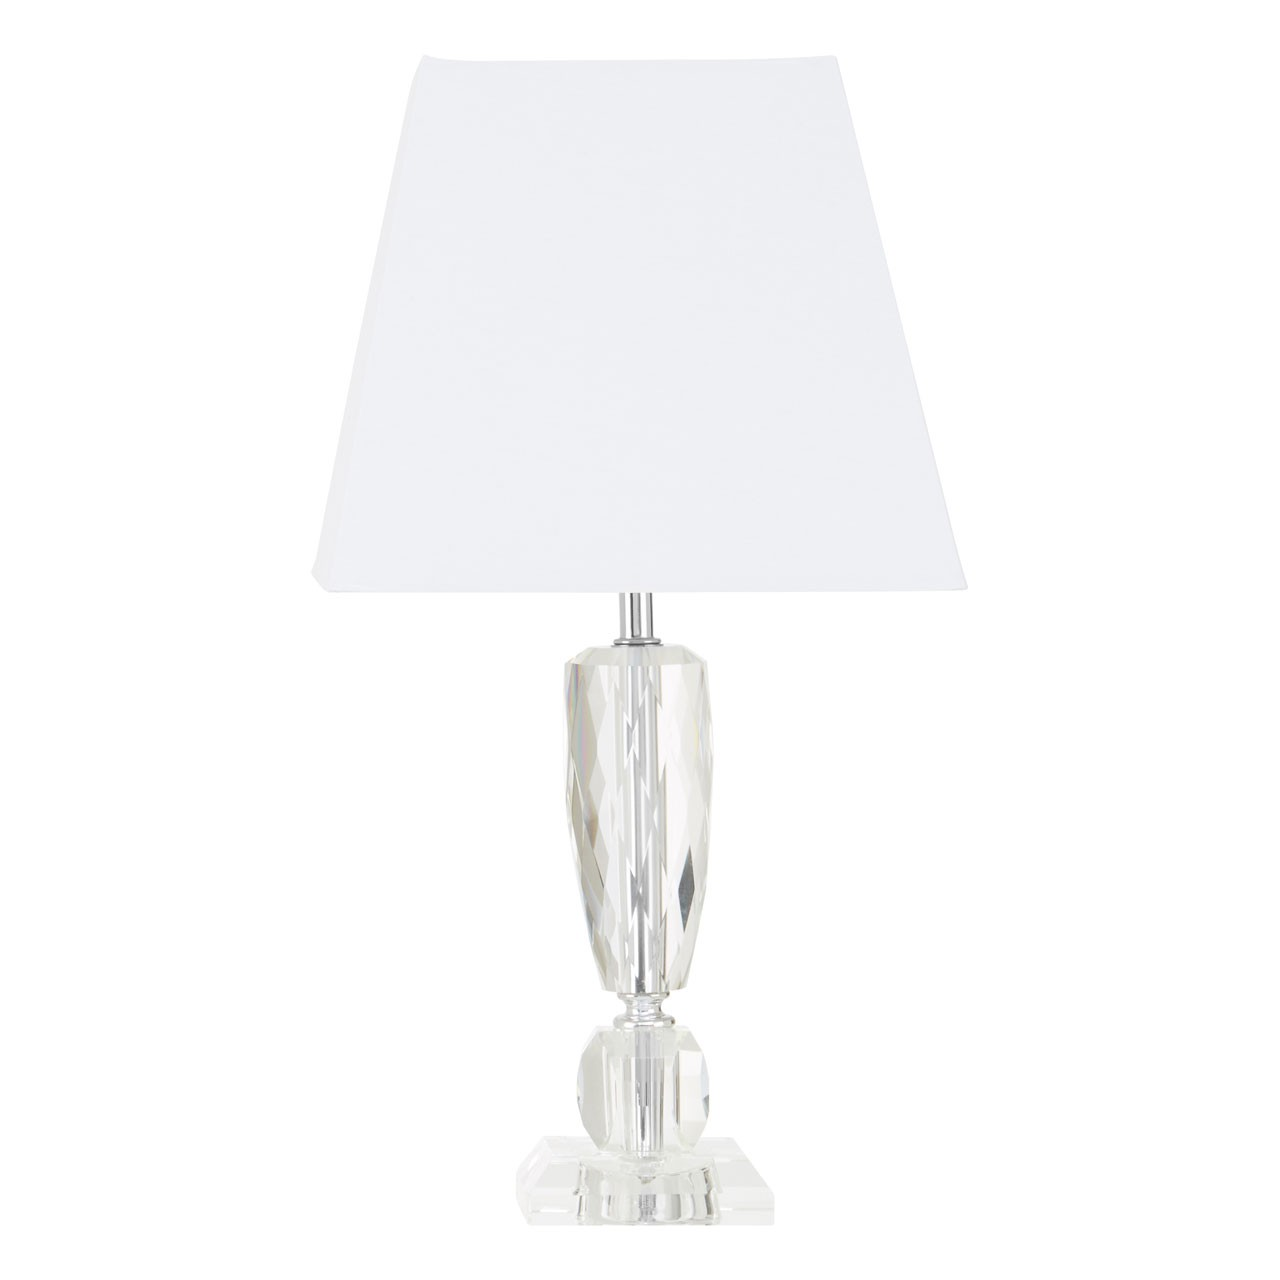 Halina Table Lamp For Home Living